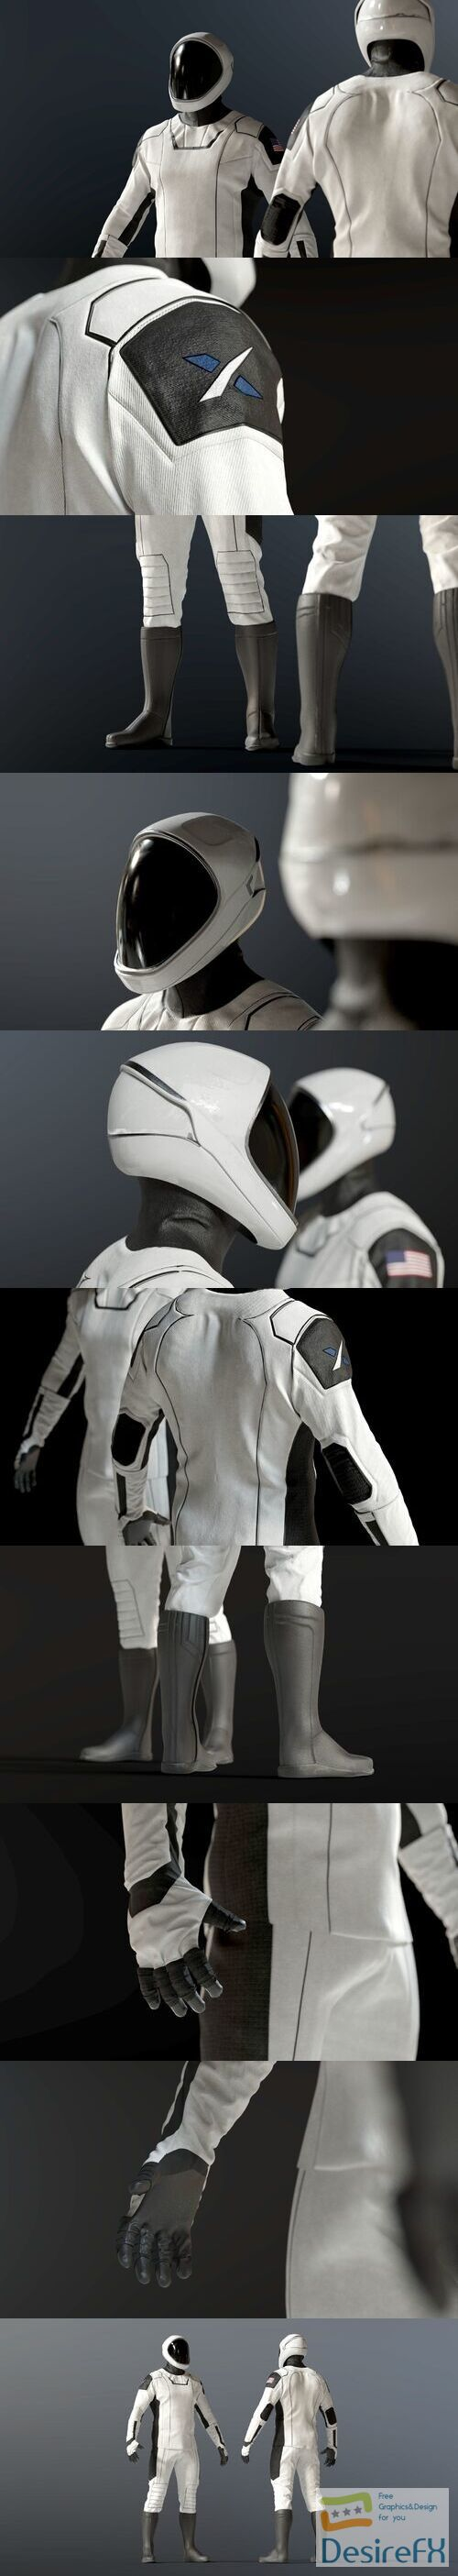 SPACESUIT SpaceX Dragon Starman 3D Model